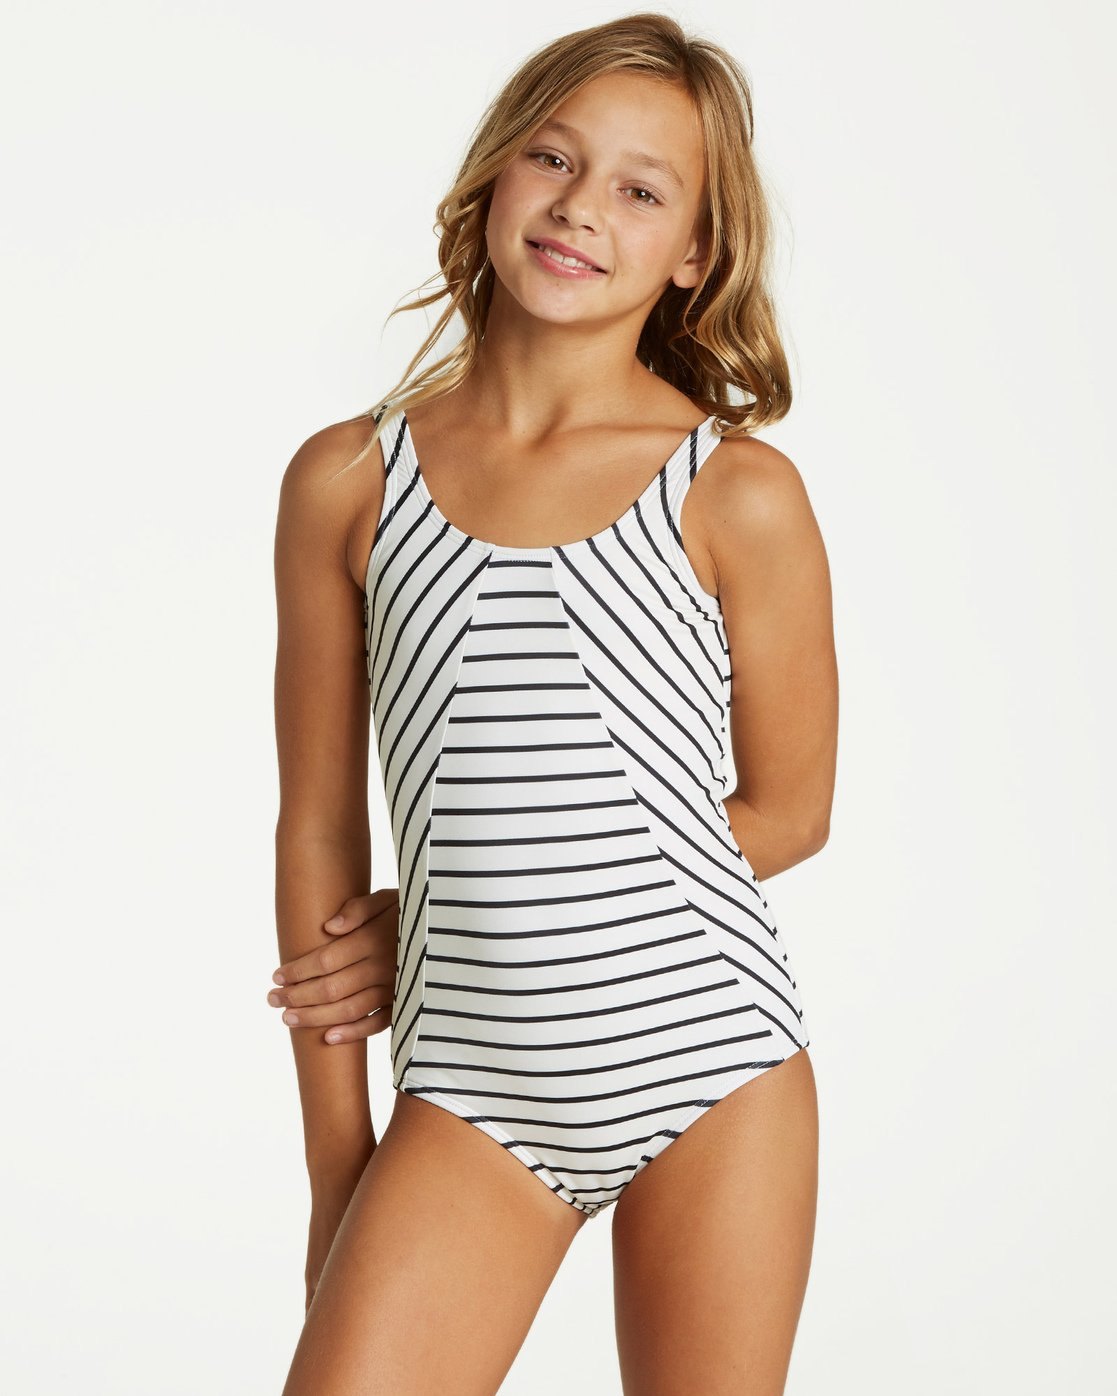 Billabong Girls Big Night Out One Piece Swimsuit